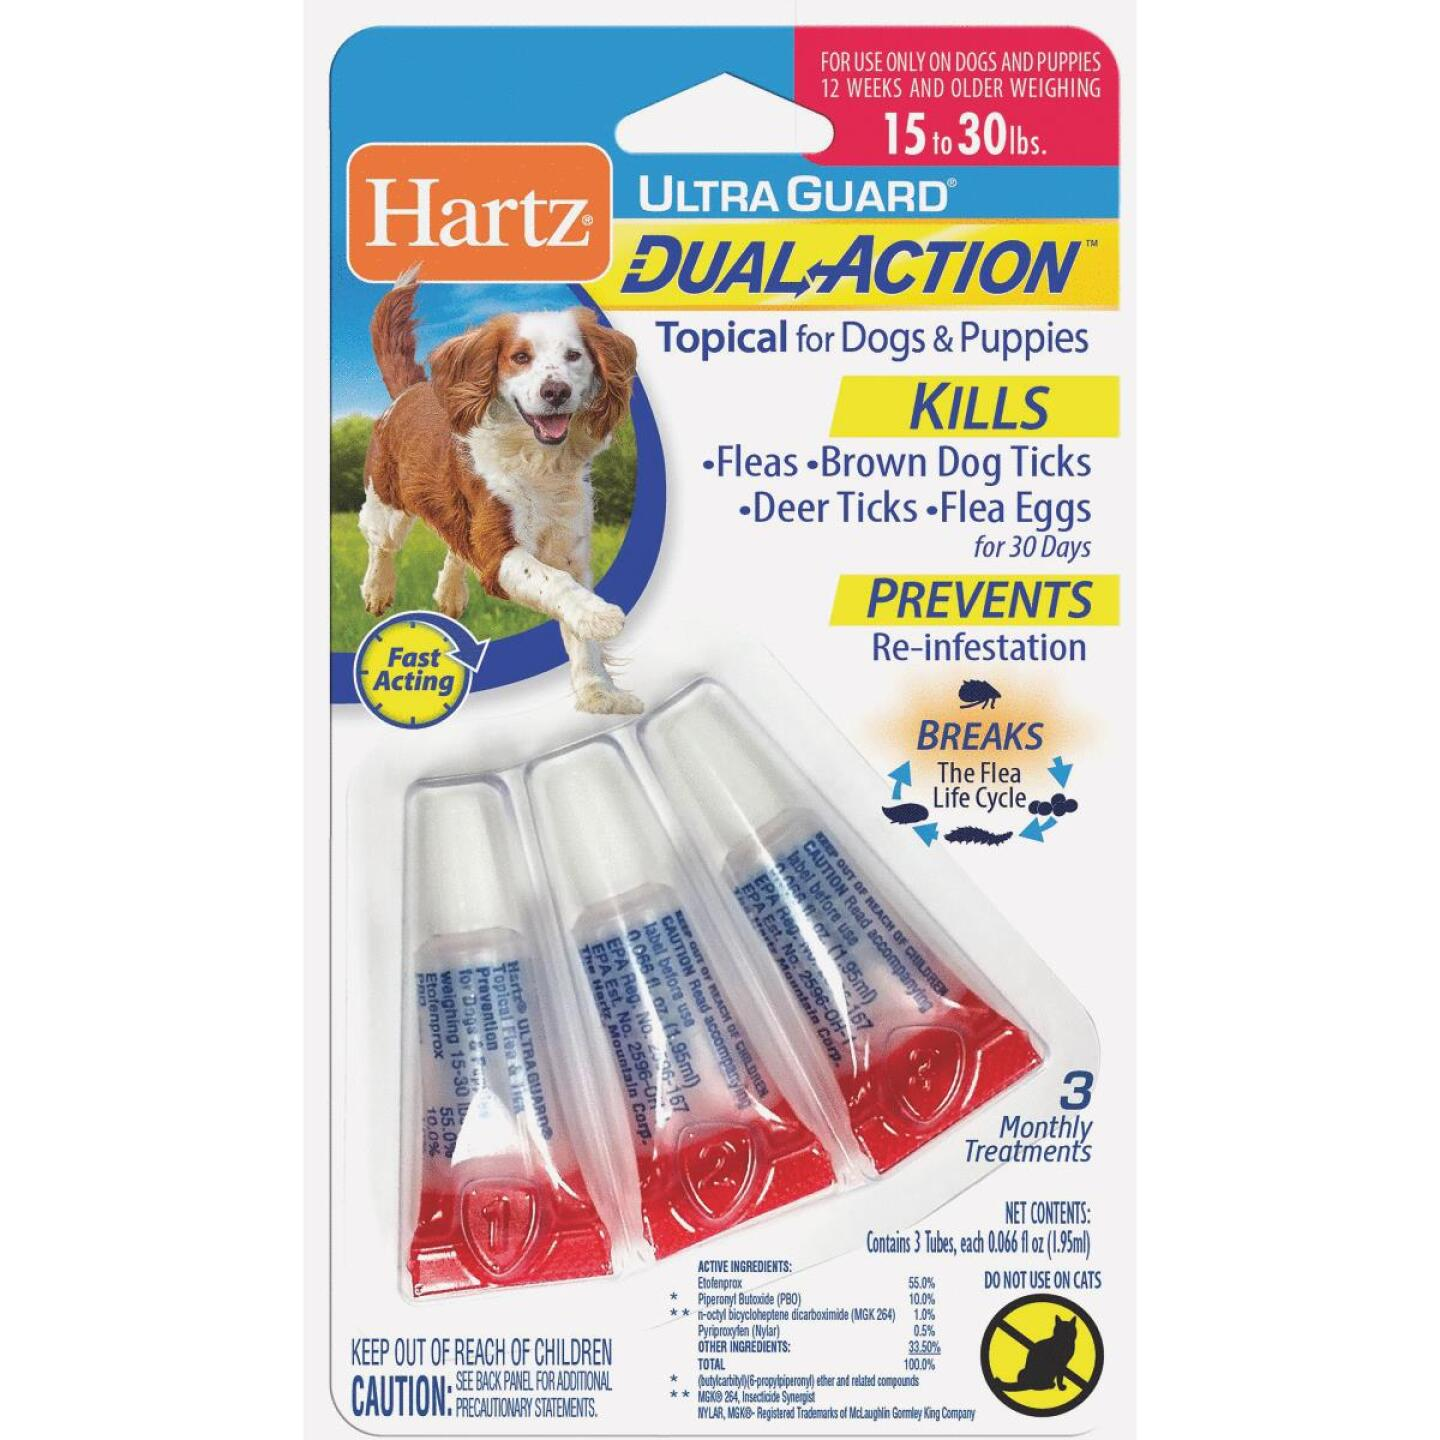 Hartz UltraGuard Dual Action 3-Month Supply Flea & Tick Treatment For Dogs & Puppies From 15 to 30 Lb. Image 1